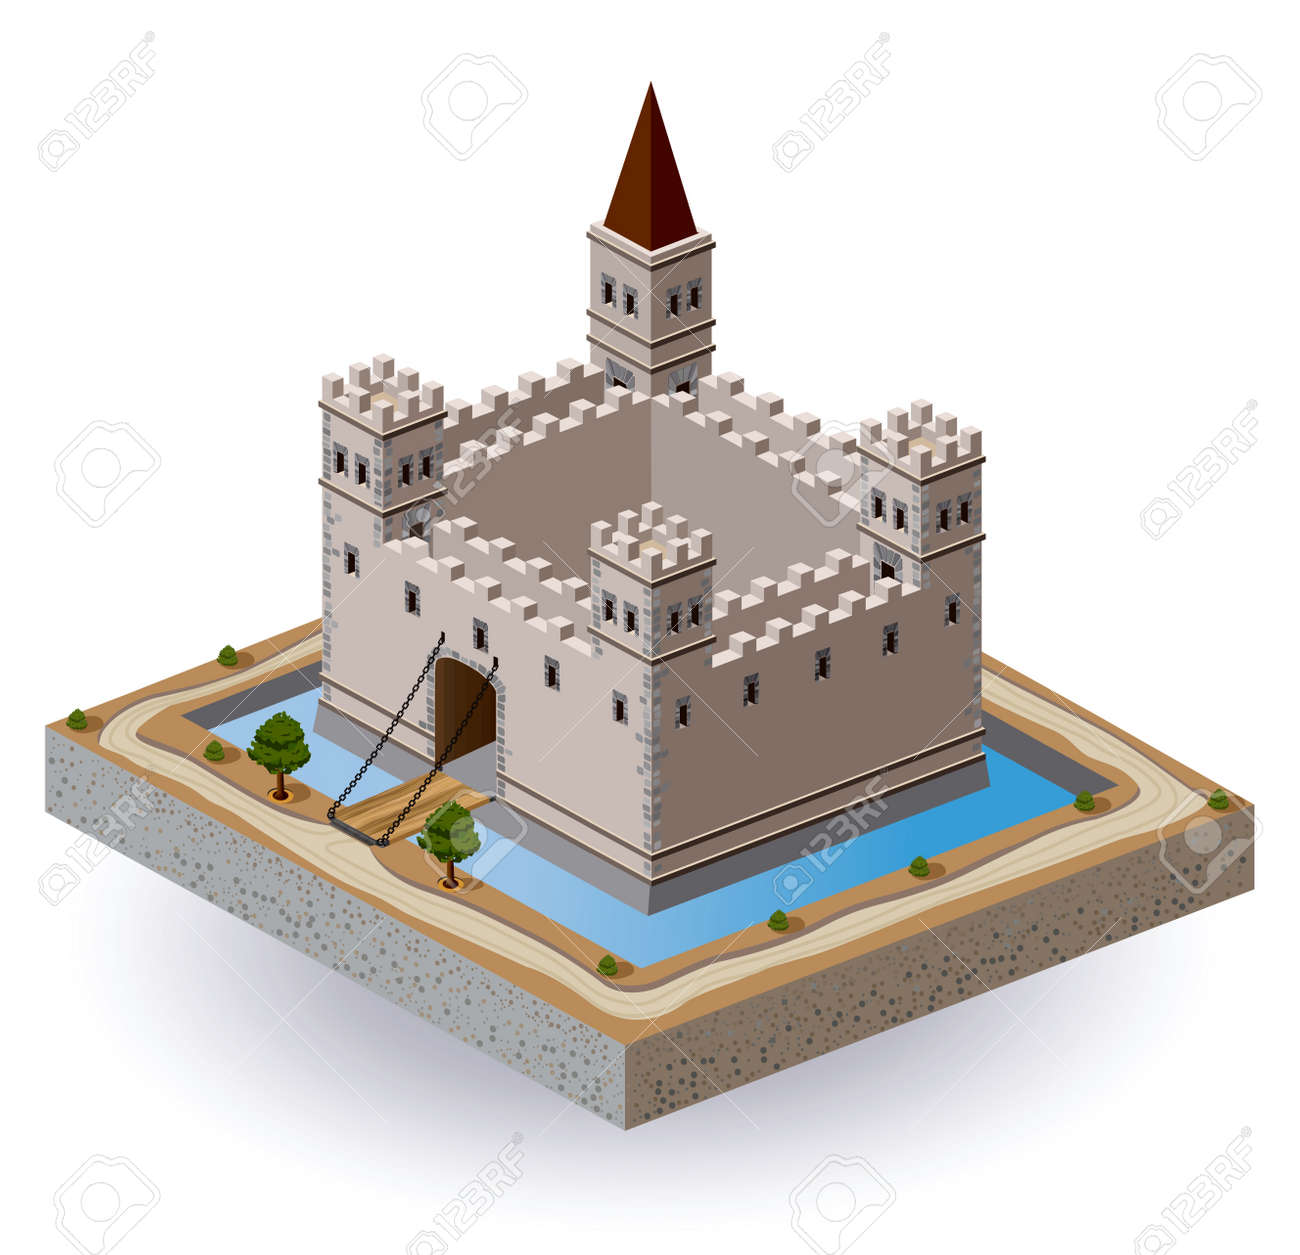 Isometric projection of the vector of a medieval castle with a moat and gate Stock Vector - 12481563